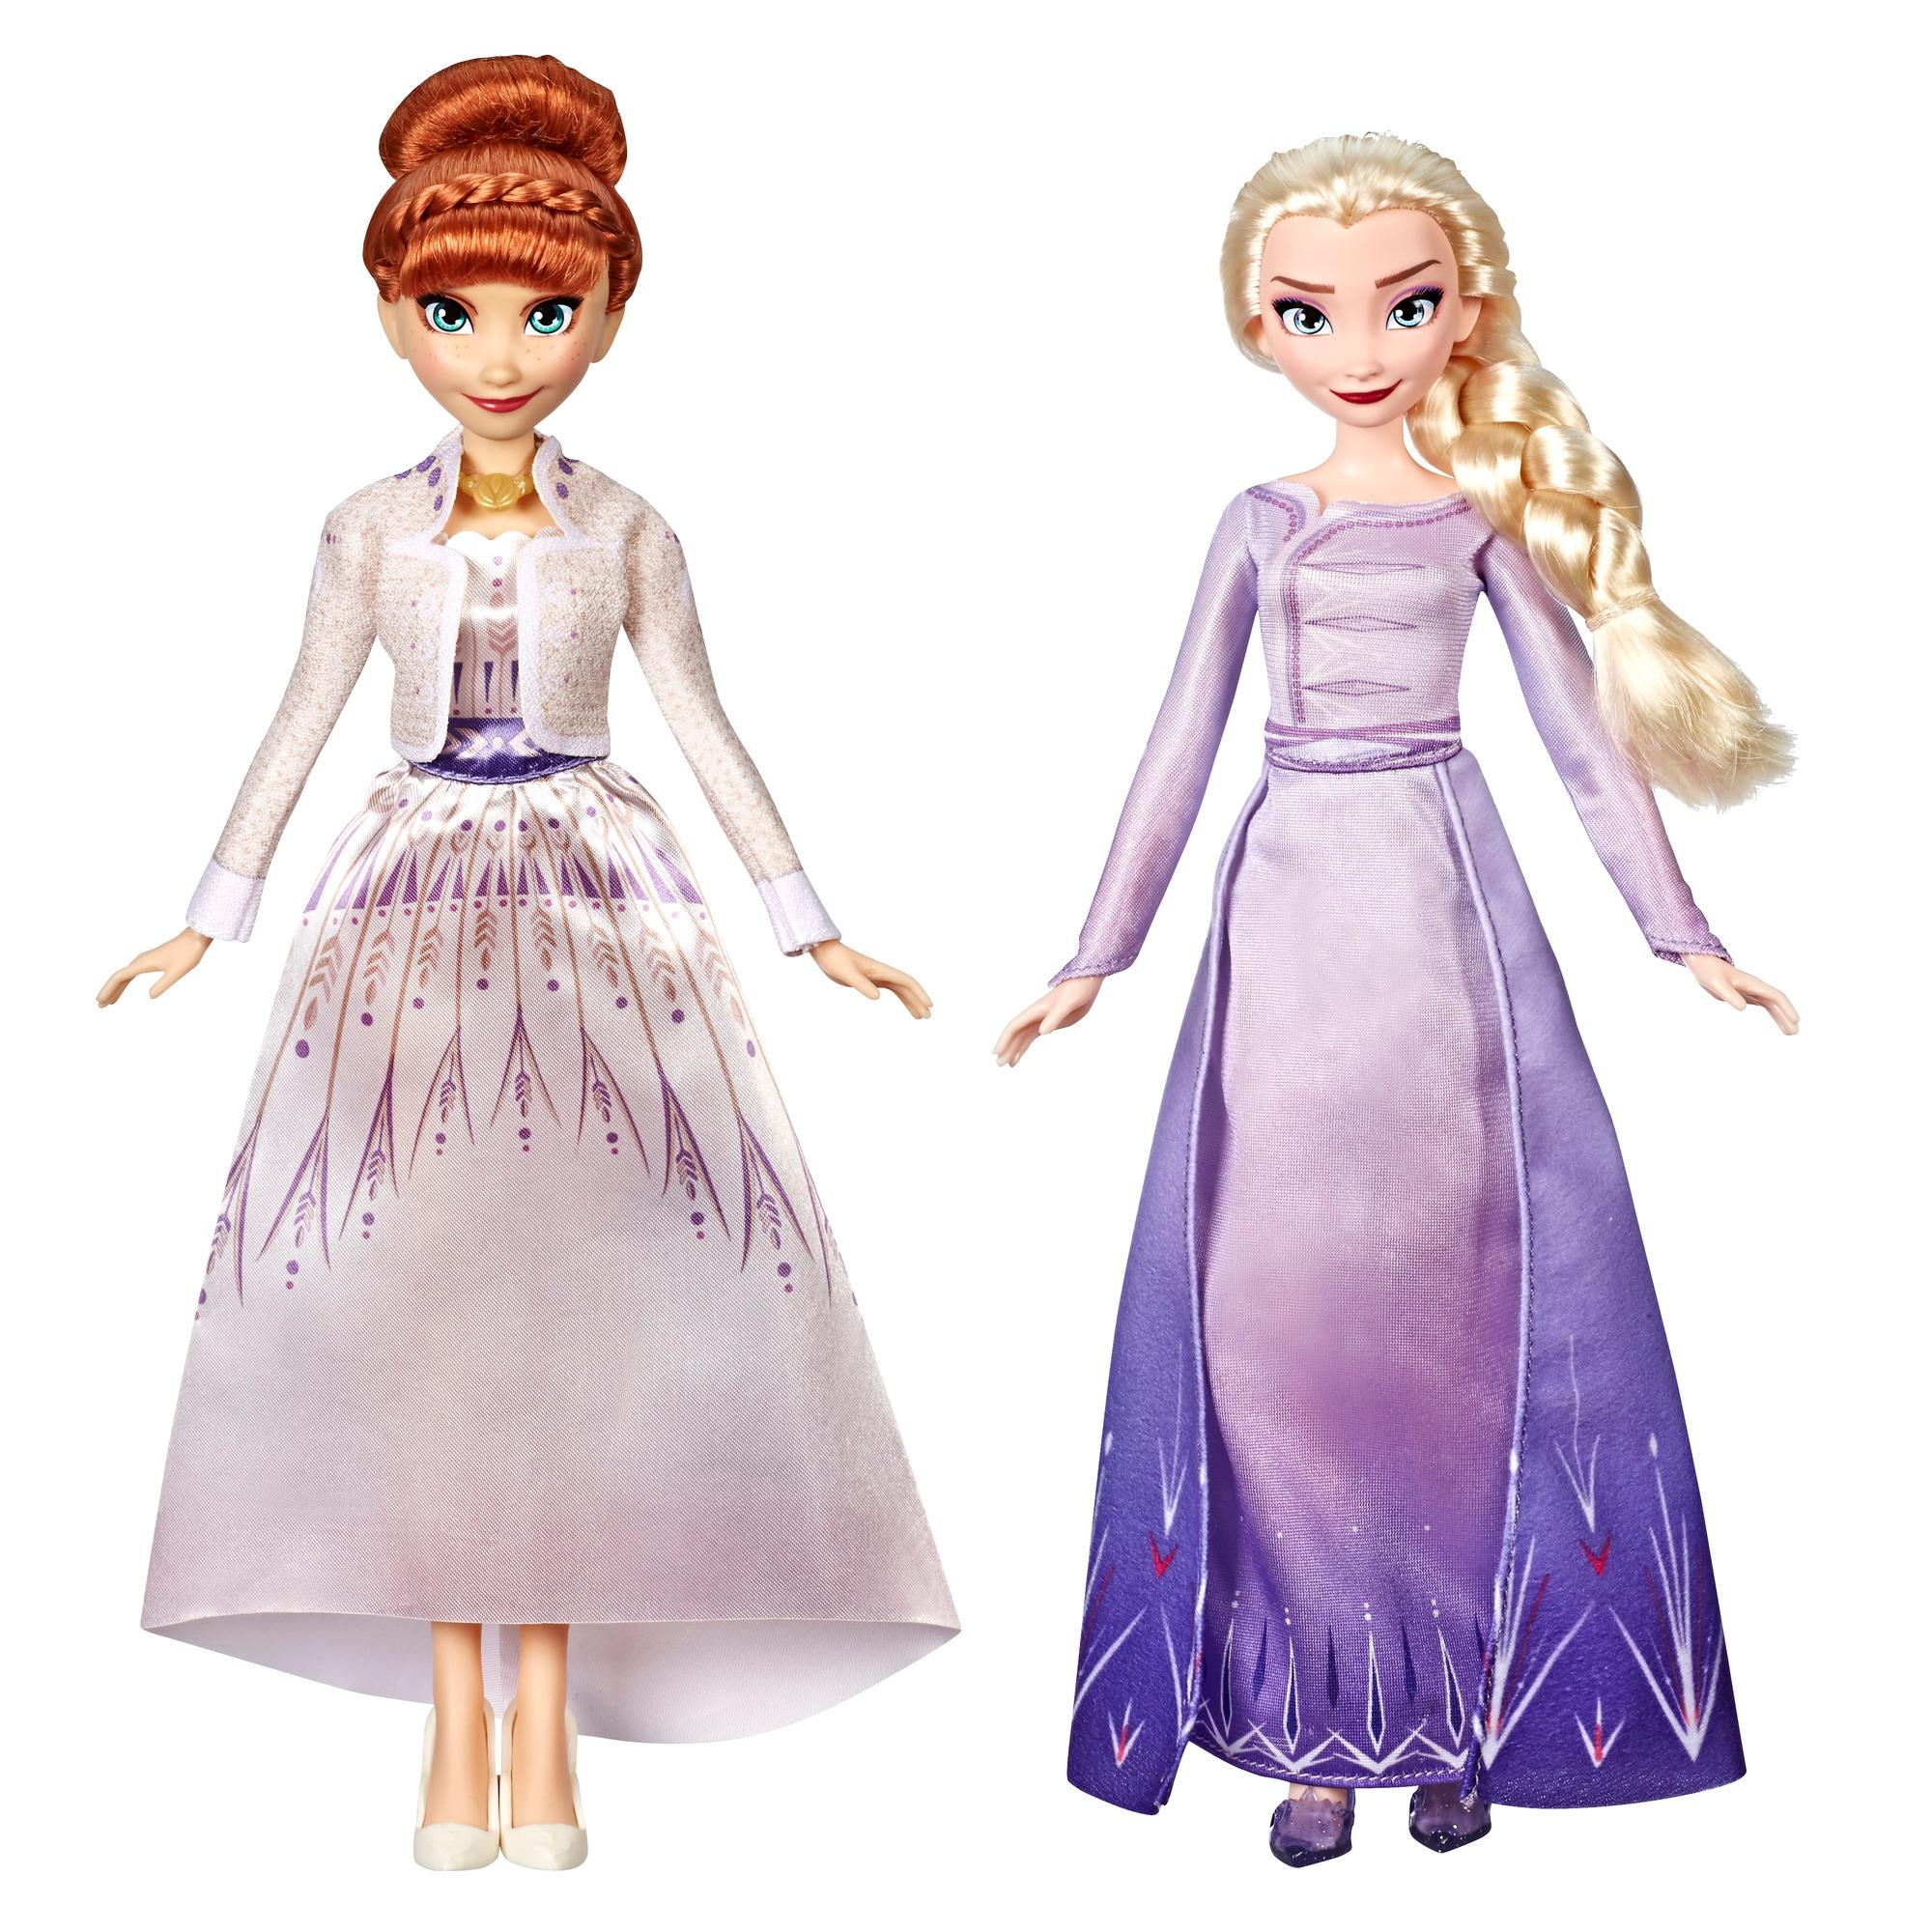 Disney Frozen Anna and Elsa Fashion Doll Set, With Removable Fashions, Inspired by the Movie Disney's Frozen 2